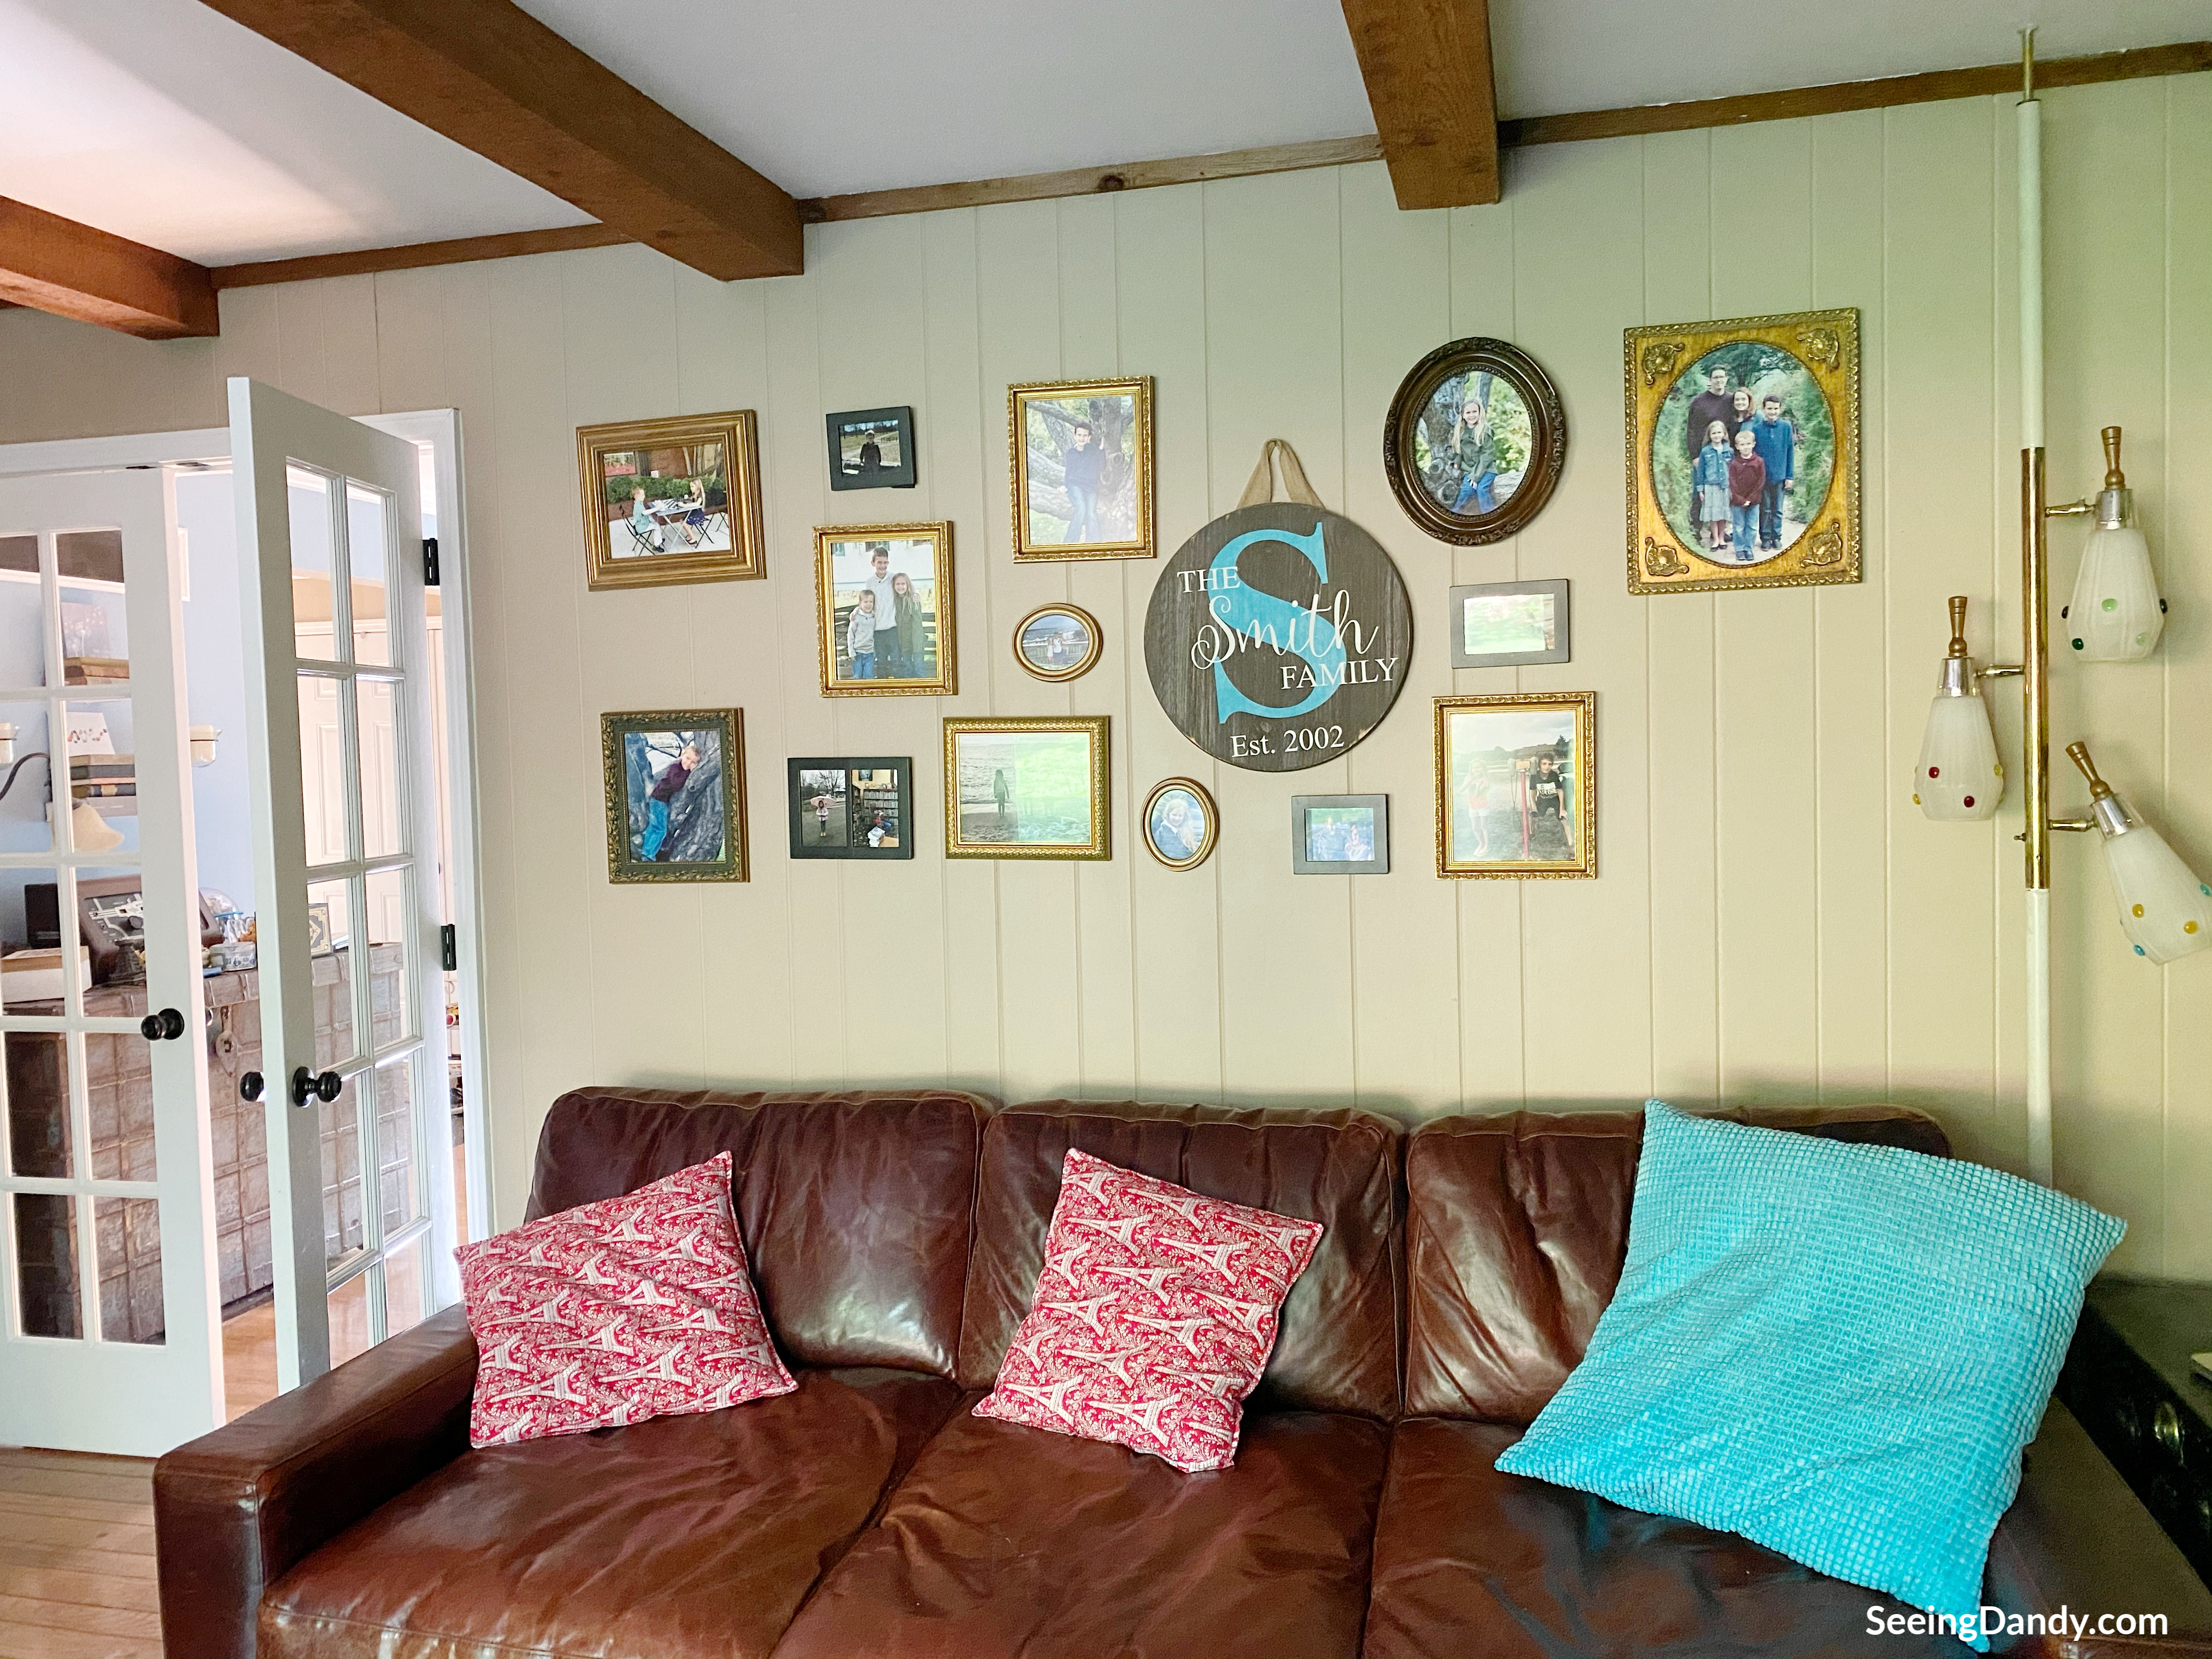 vintage picture frames, gallery photo wall, diy, family pictures, red eiffel tower pillows, farmhouse style, vintage pole lamp, ceiling wood beams, painted wood paneled wall